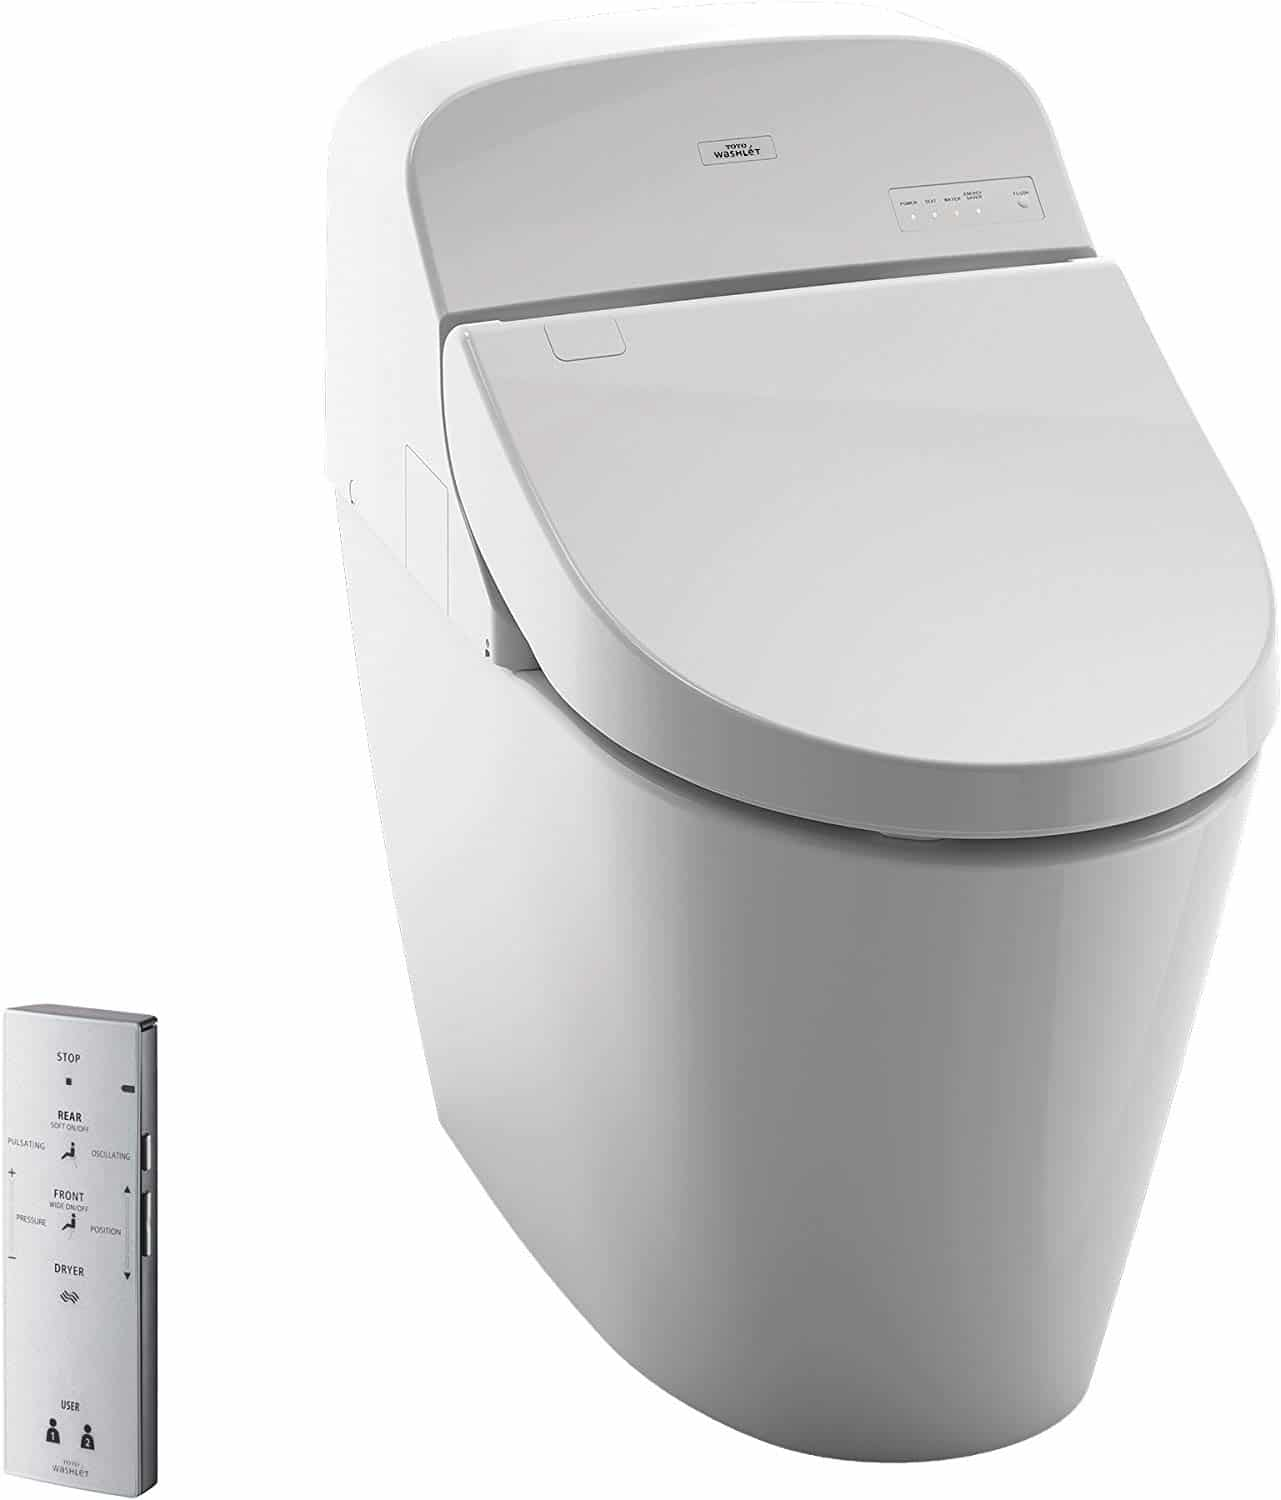 Unique Gifts...Toto Toilet, if it fits the budget